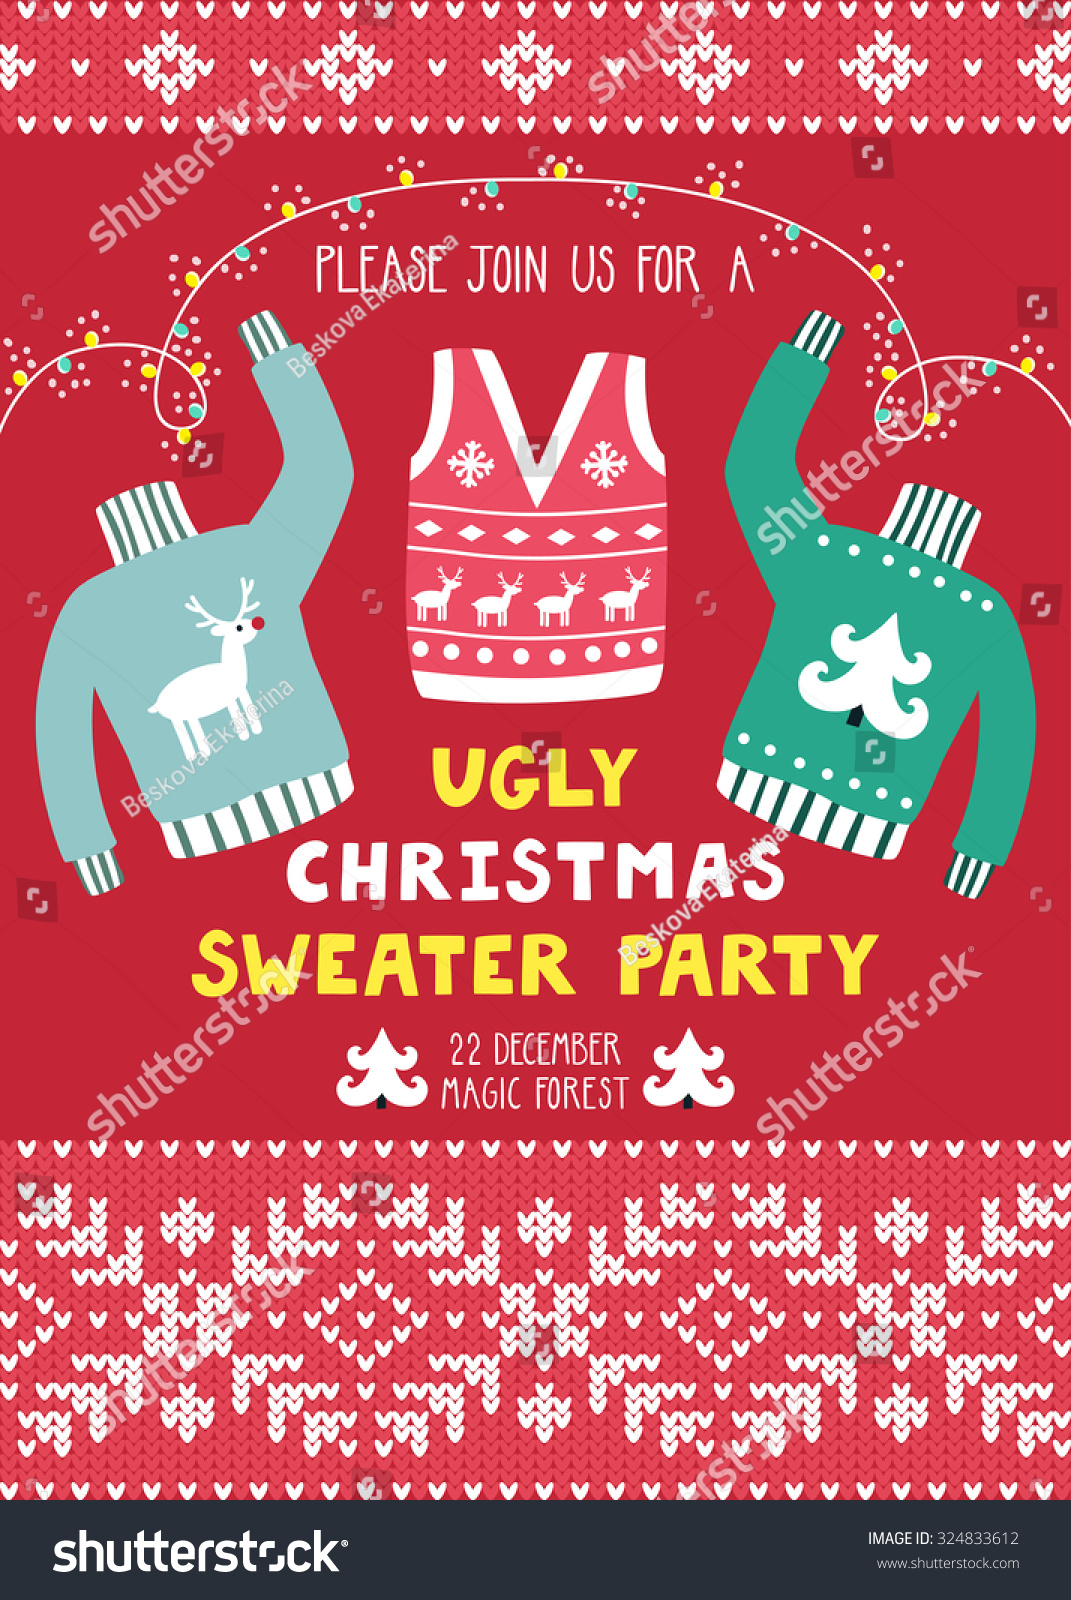 vector invitation template ugly sweaters scandinavian stock vector 324833612